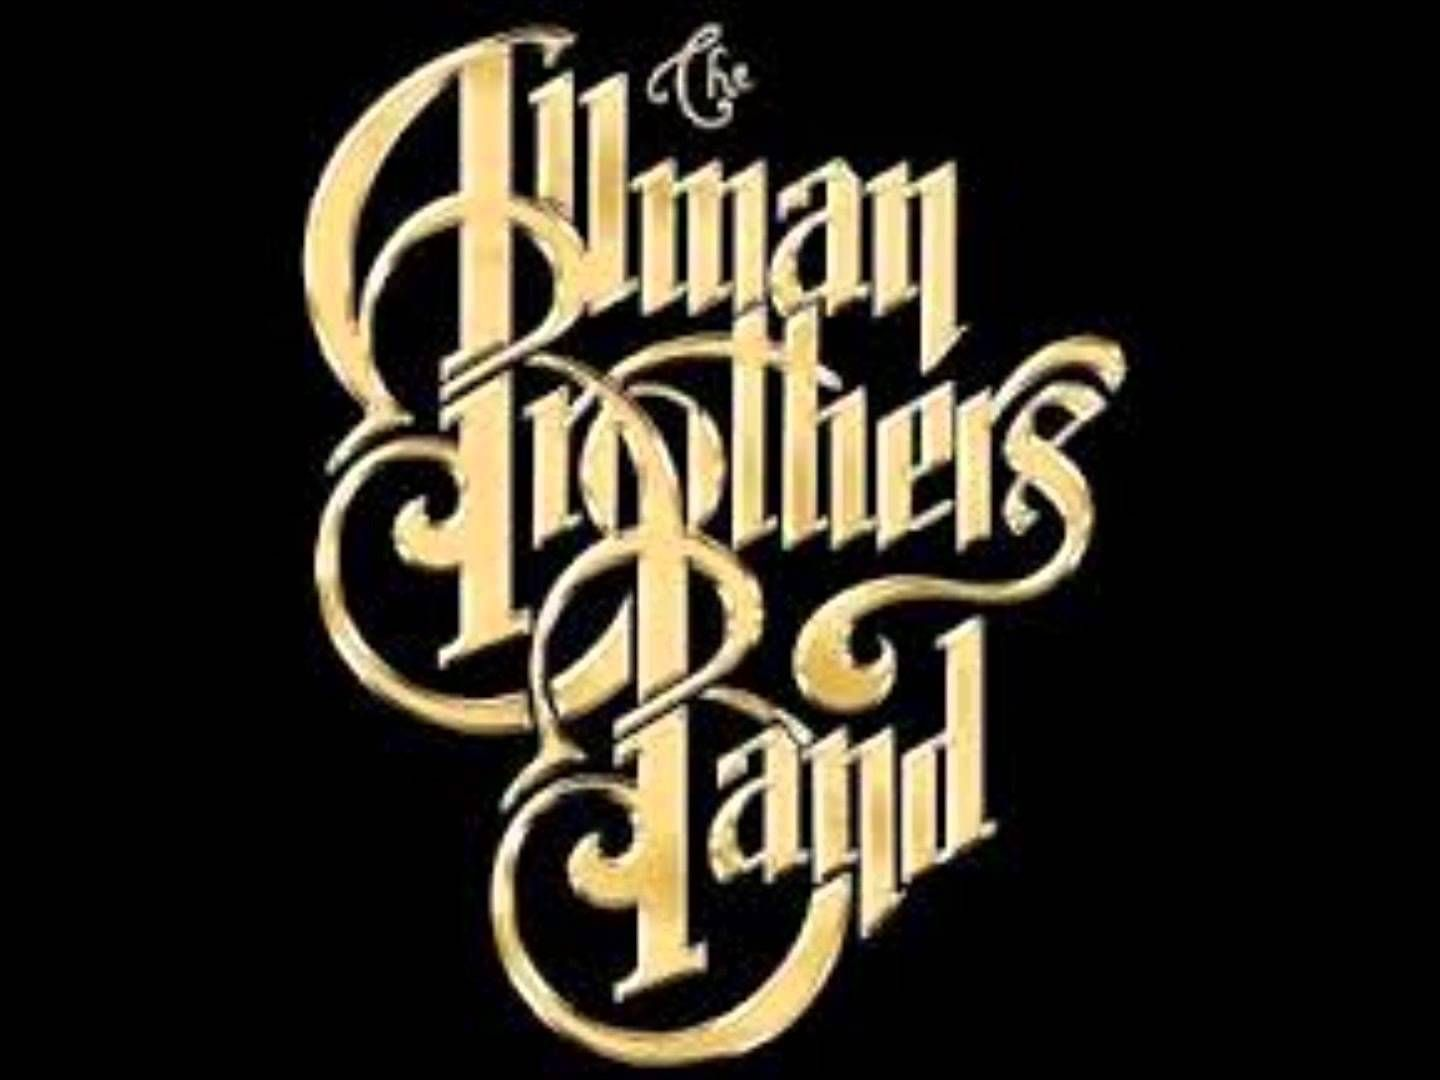 allmand brothers band a decade of hits one of the allmand brothers band a decade of hits 1969 1979 one of